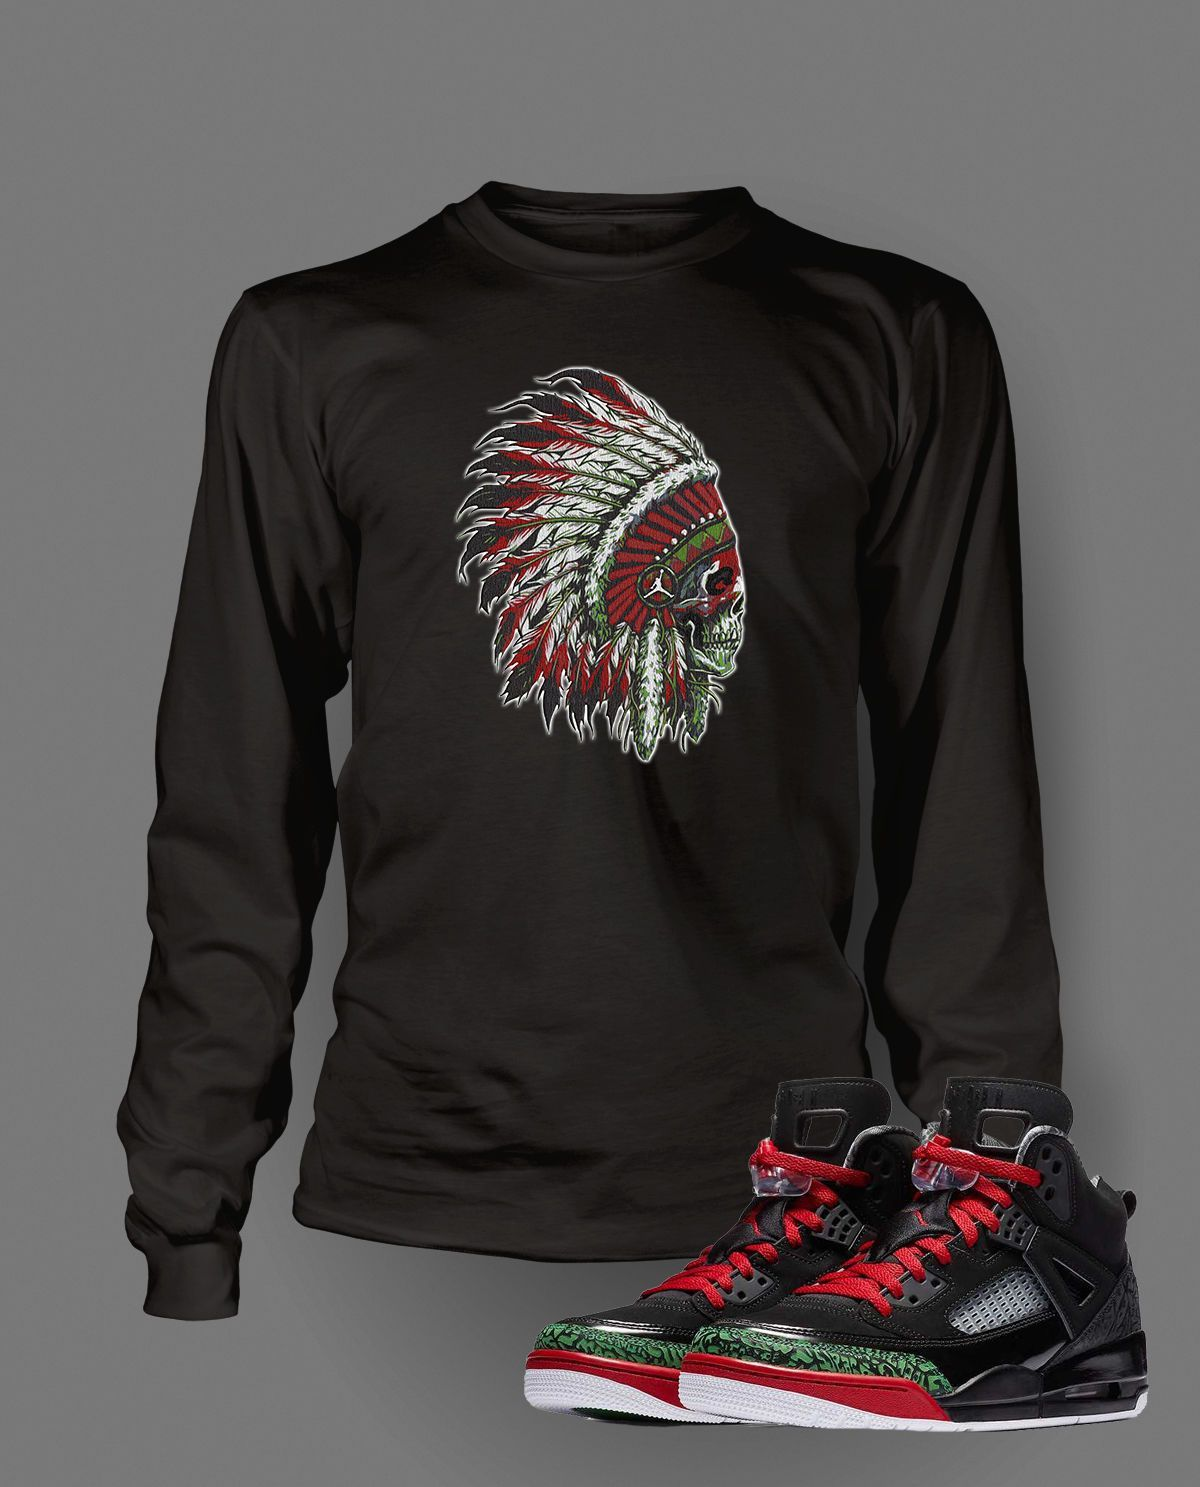 930e49b412dd Chieftain Graphic T Shirt to Match Retro Air Jordan Spizike Shoe in ...